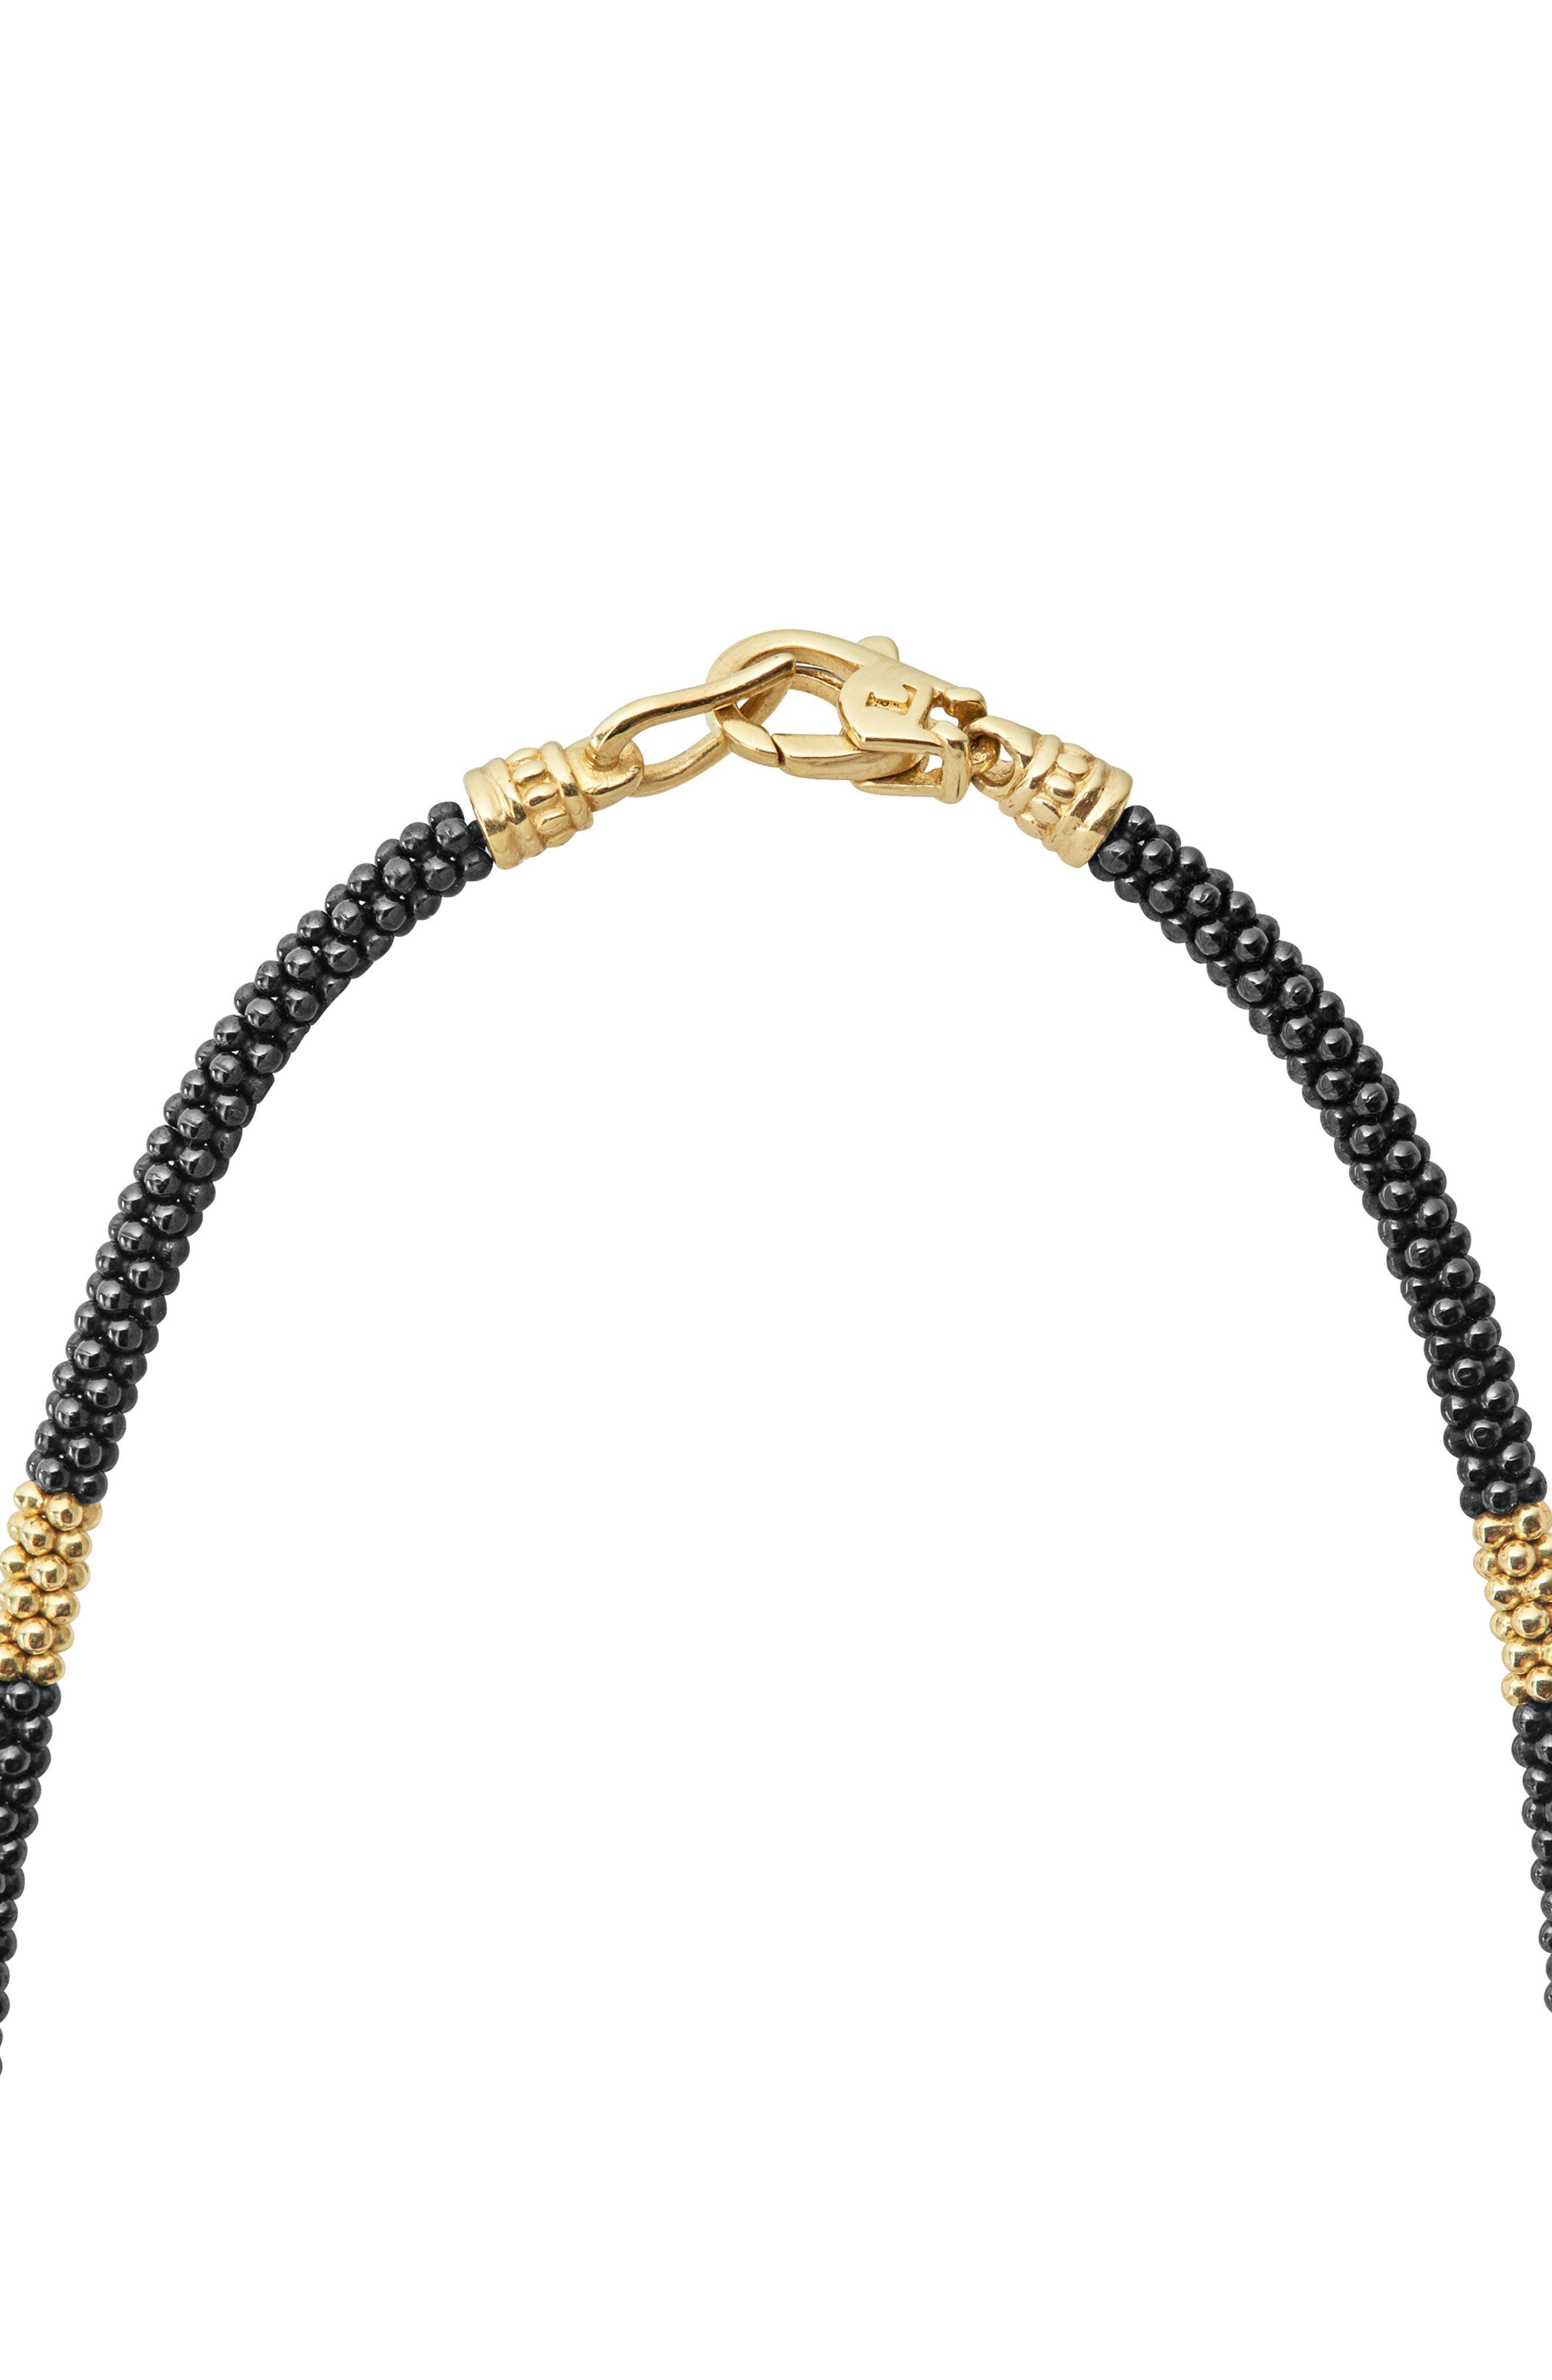 Gold & Black Caviar Rope Necklace,                             Alternate thumbnail 4, color,                             Gold